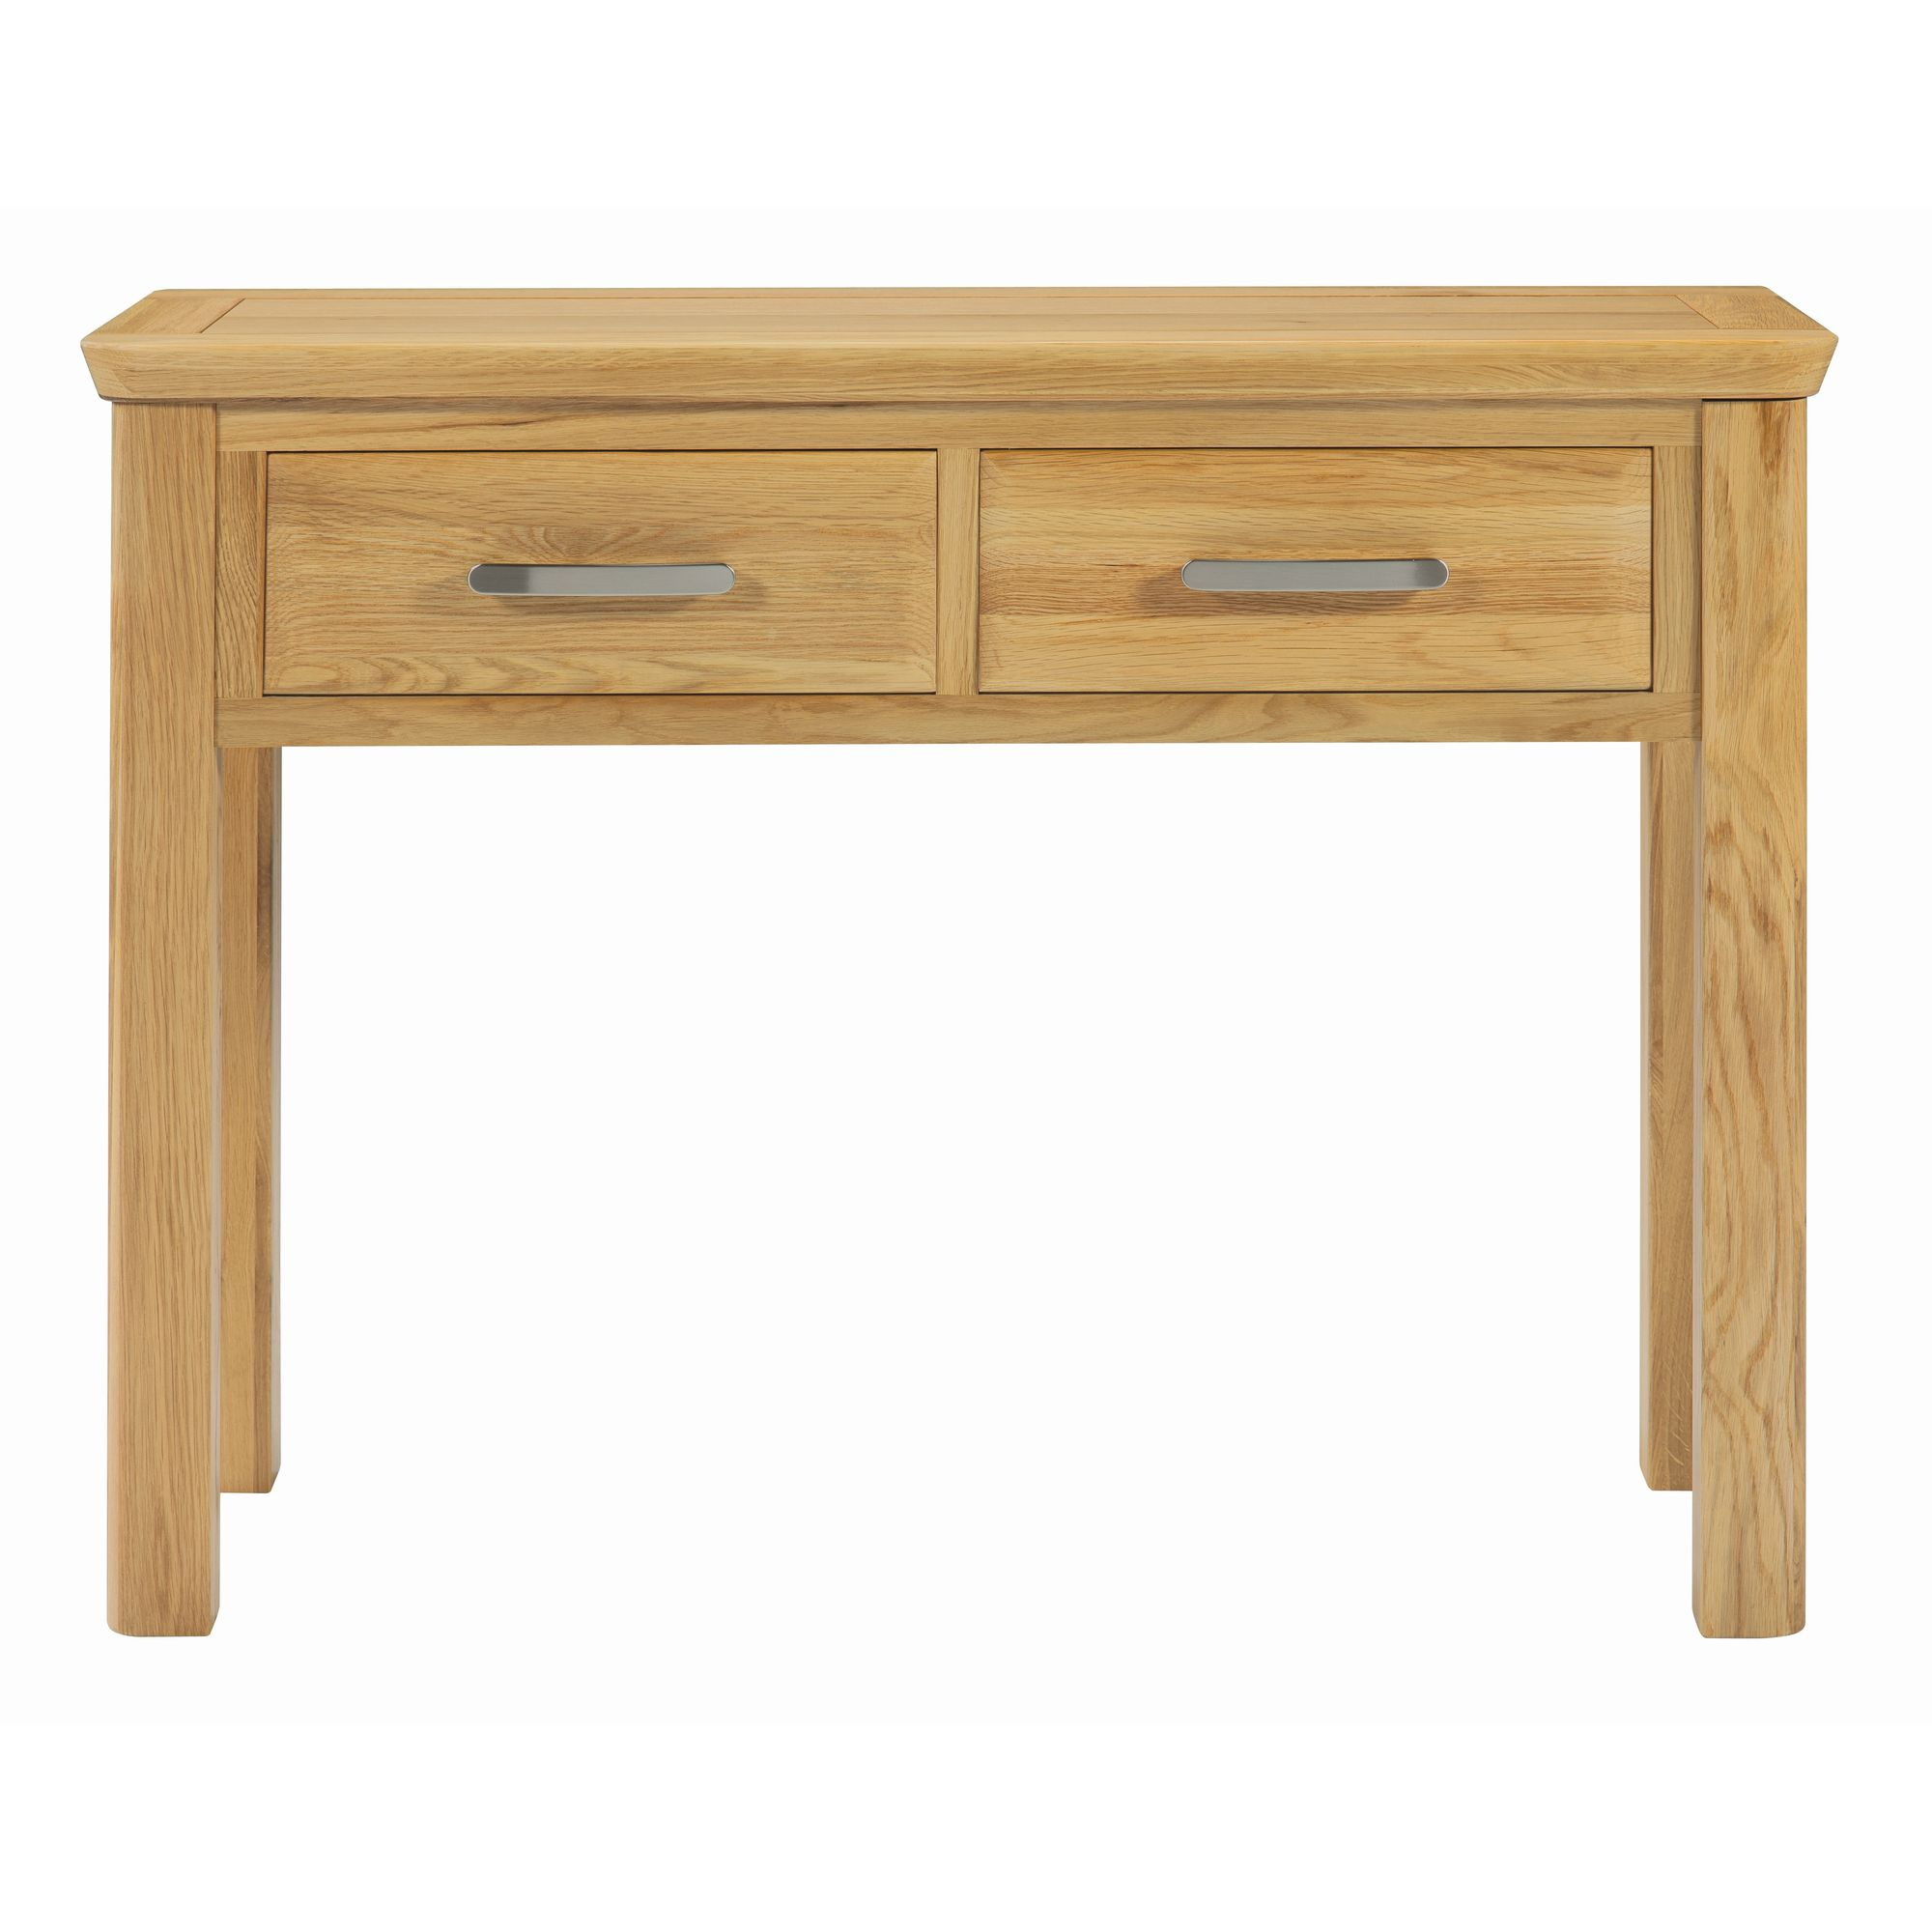 Alterton Furniture Banbury Oak Console Table at Tesco Direct